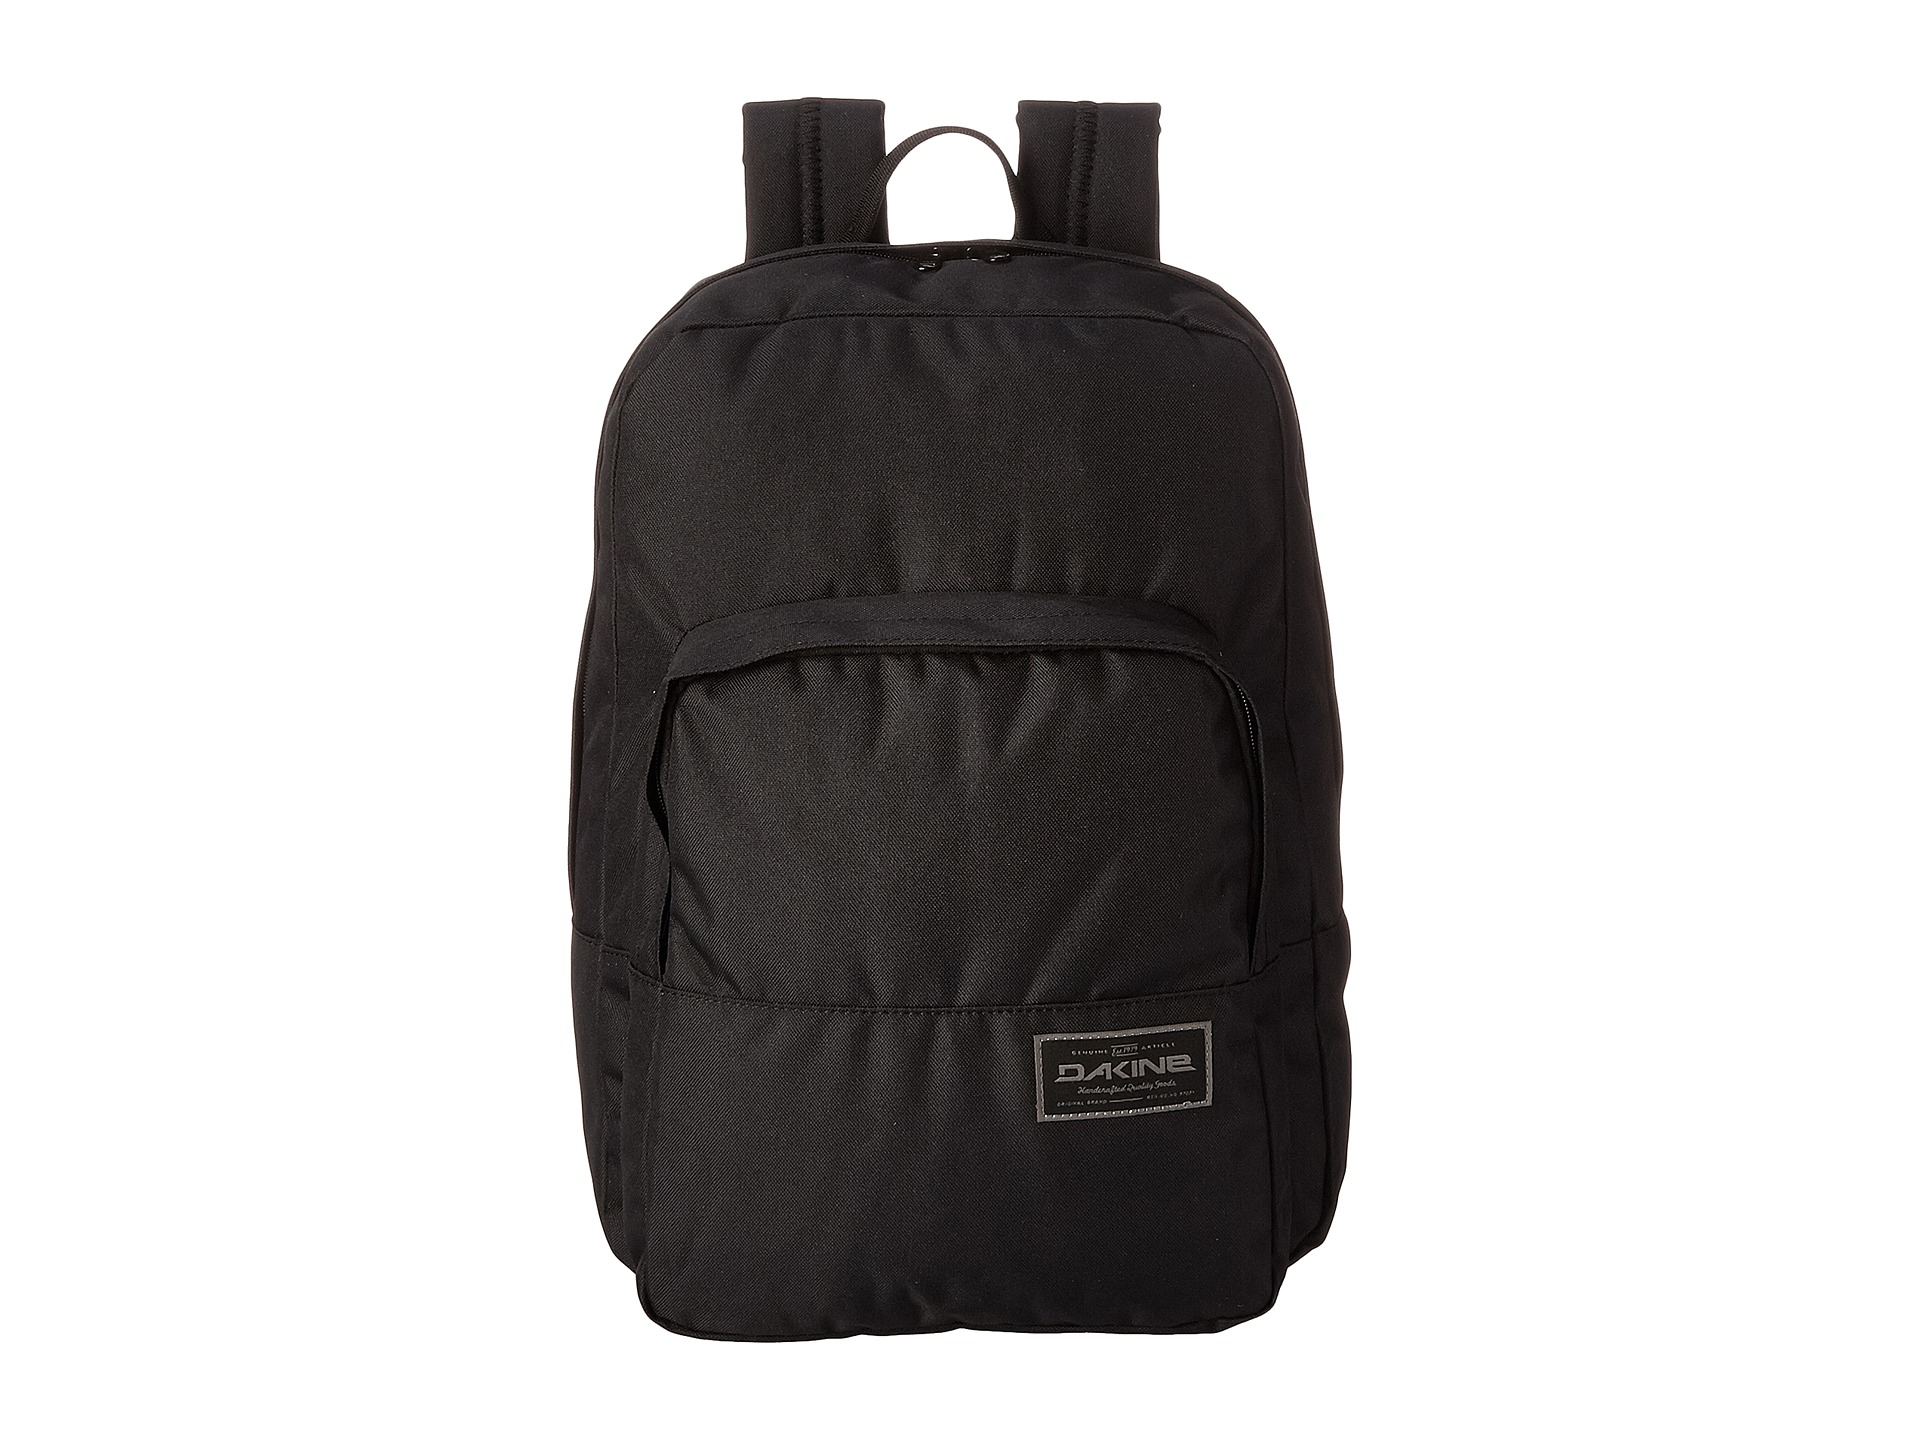 Dakine Capitol Backpack 23L - Zappos.com Free Shipping BOTH Ways